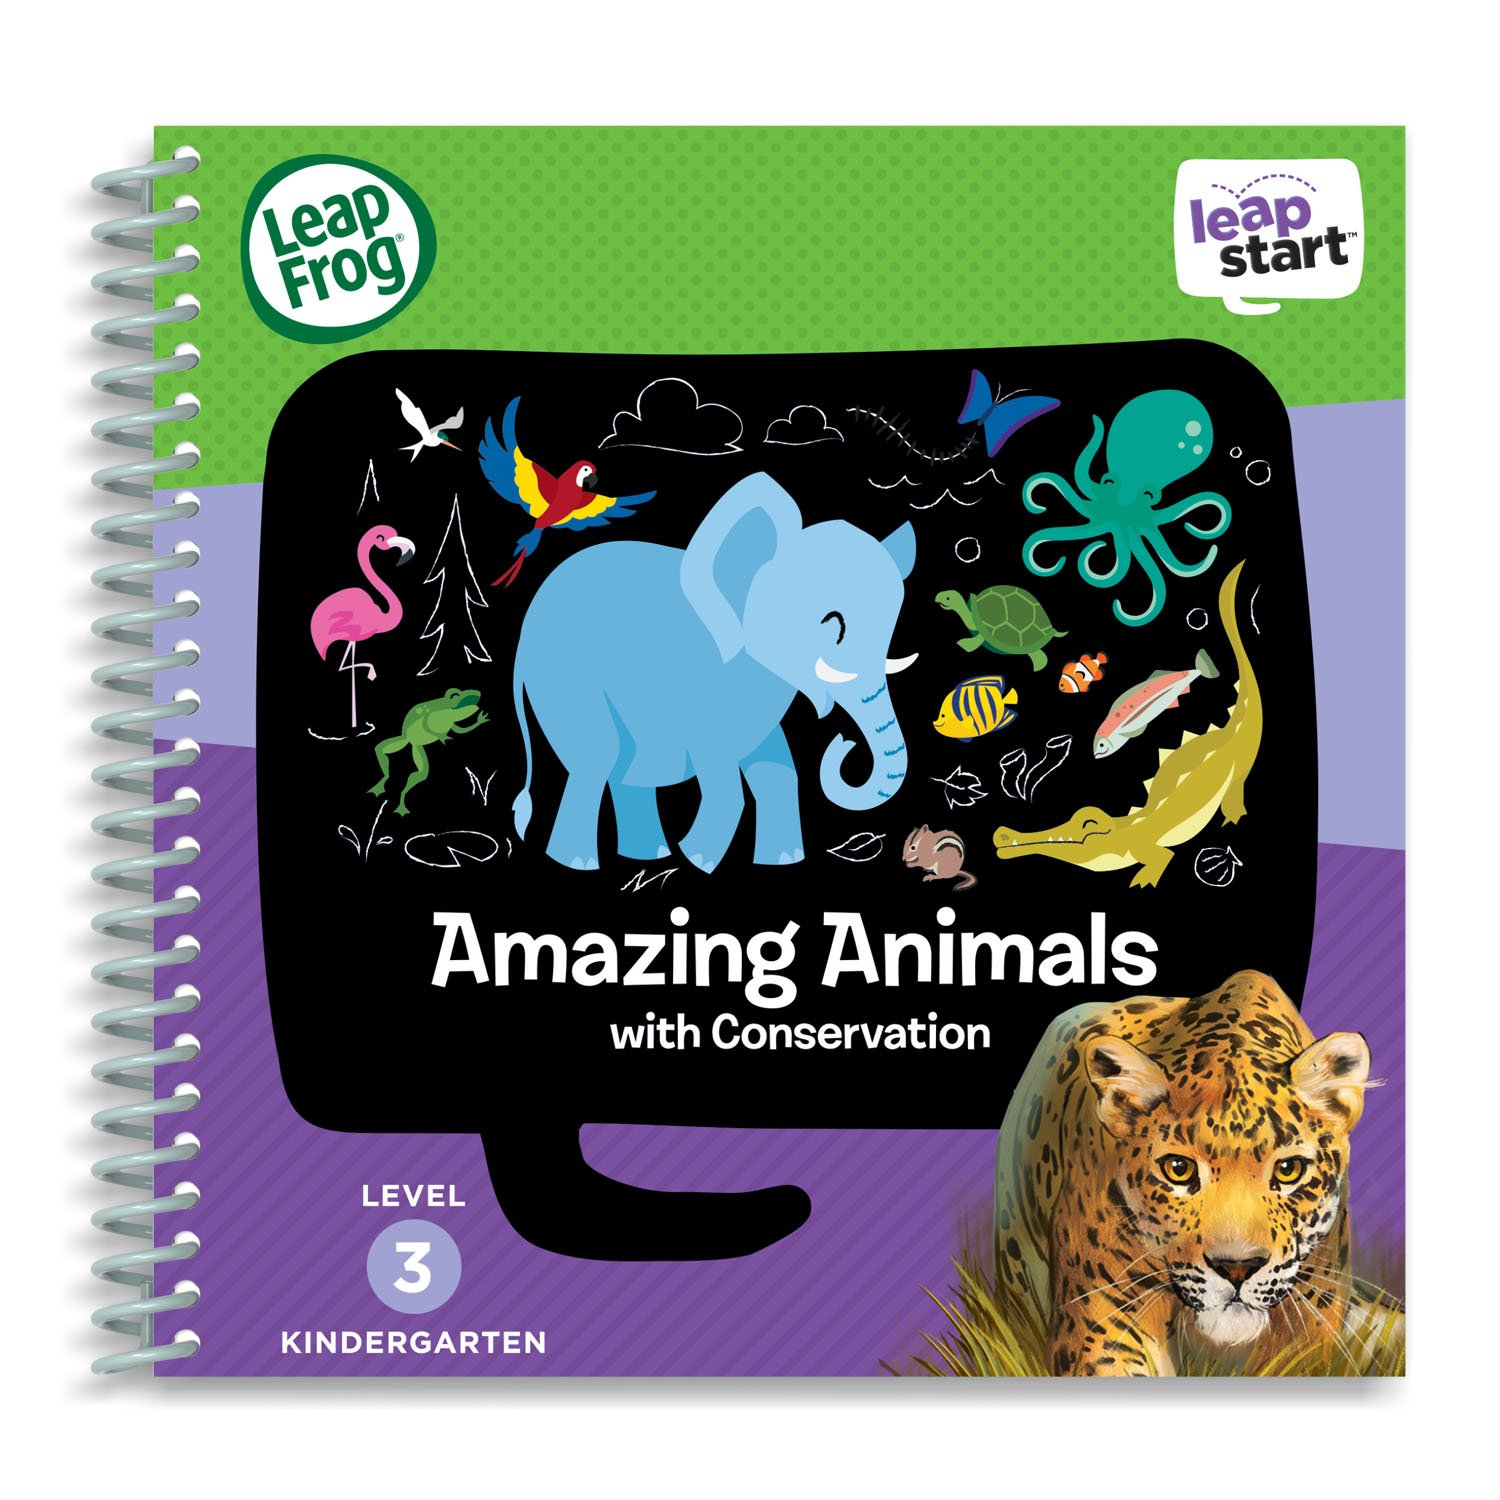 LeapFrog LeapStart Level 3 Kindergarten Activity Book Bundle with Kids' World Atlas, Amazing Animals by LeapFrog (Image #3)